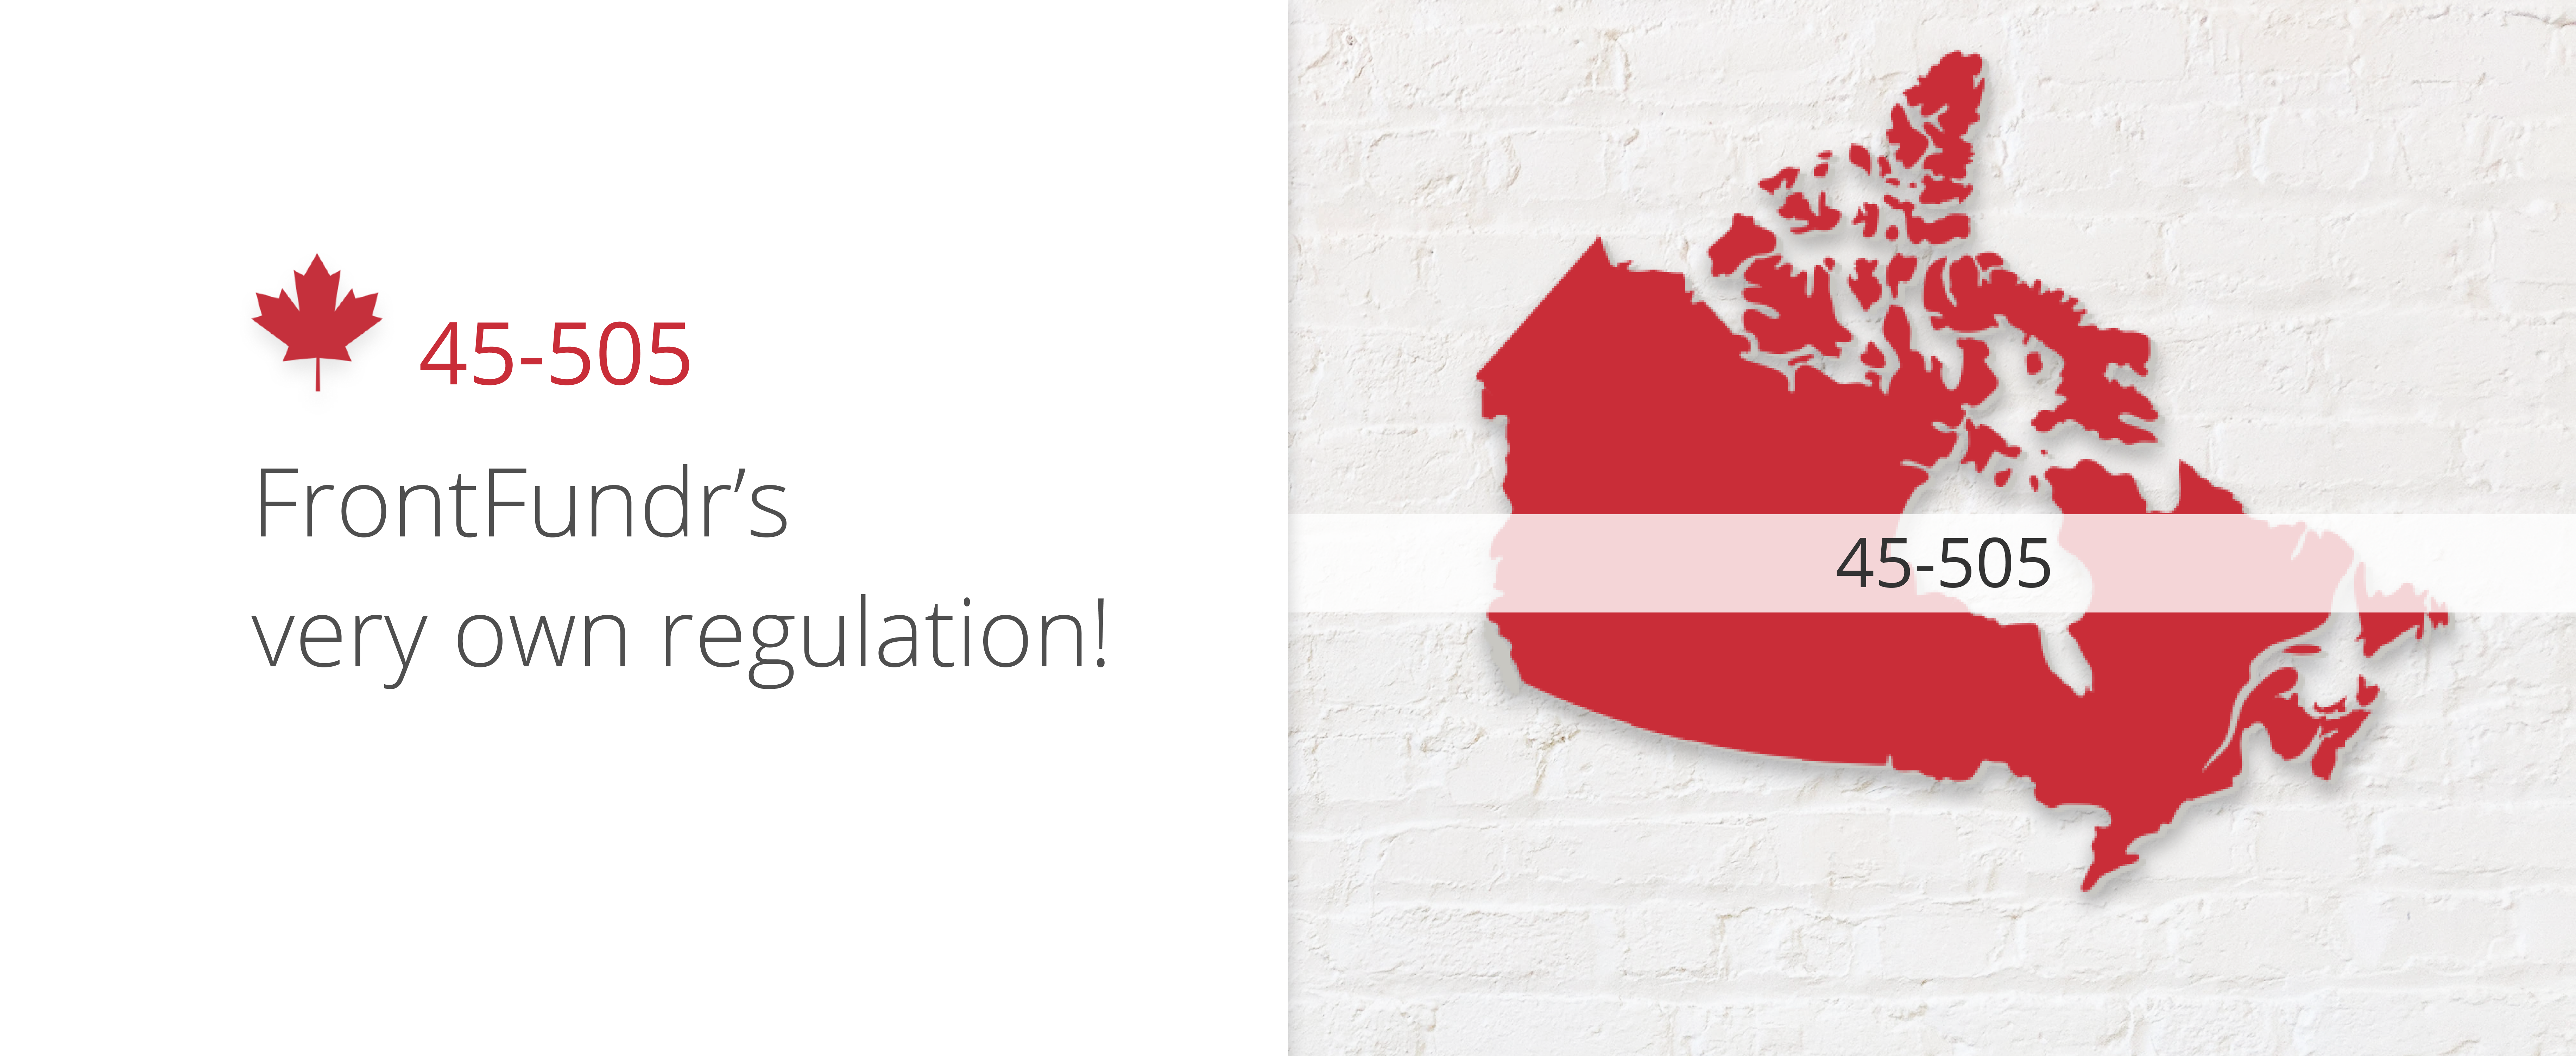 Ontario Securities Rule 45-505: FrontfFundr's Regulation for Connecting All Entrepreneurs and Investors